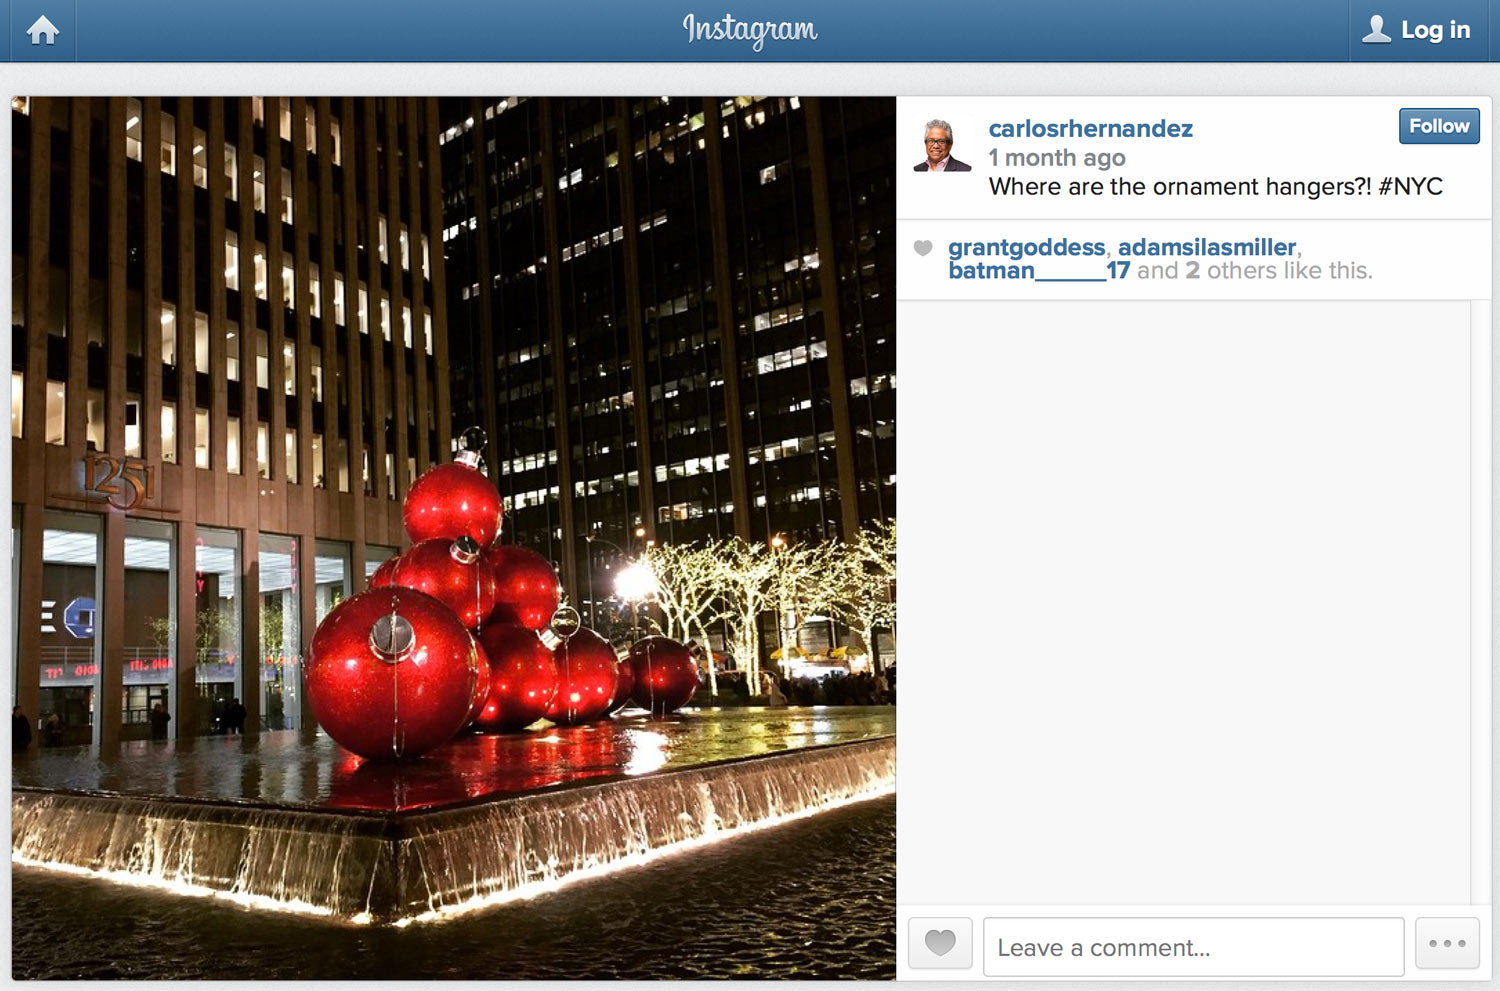 Instagram-Content-Creation-NYC-Scene-Holidays.jpg